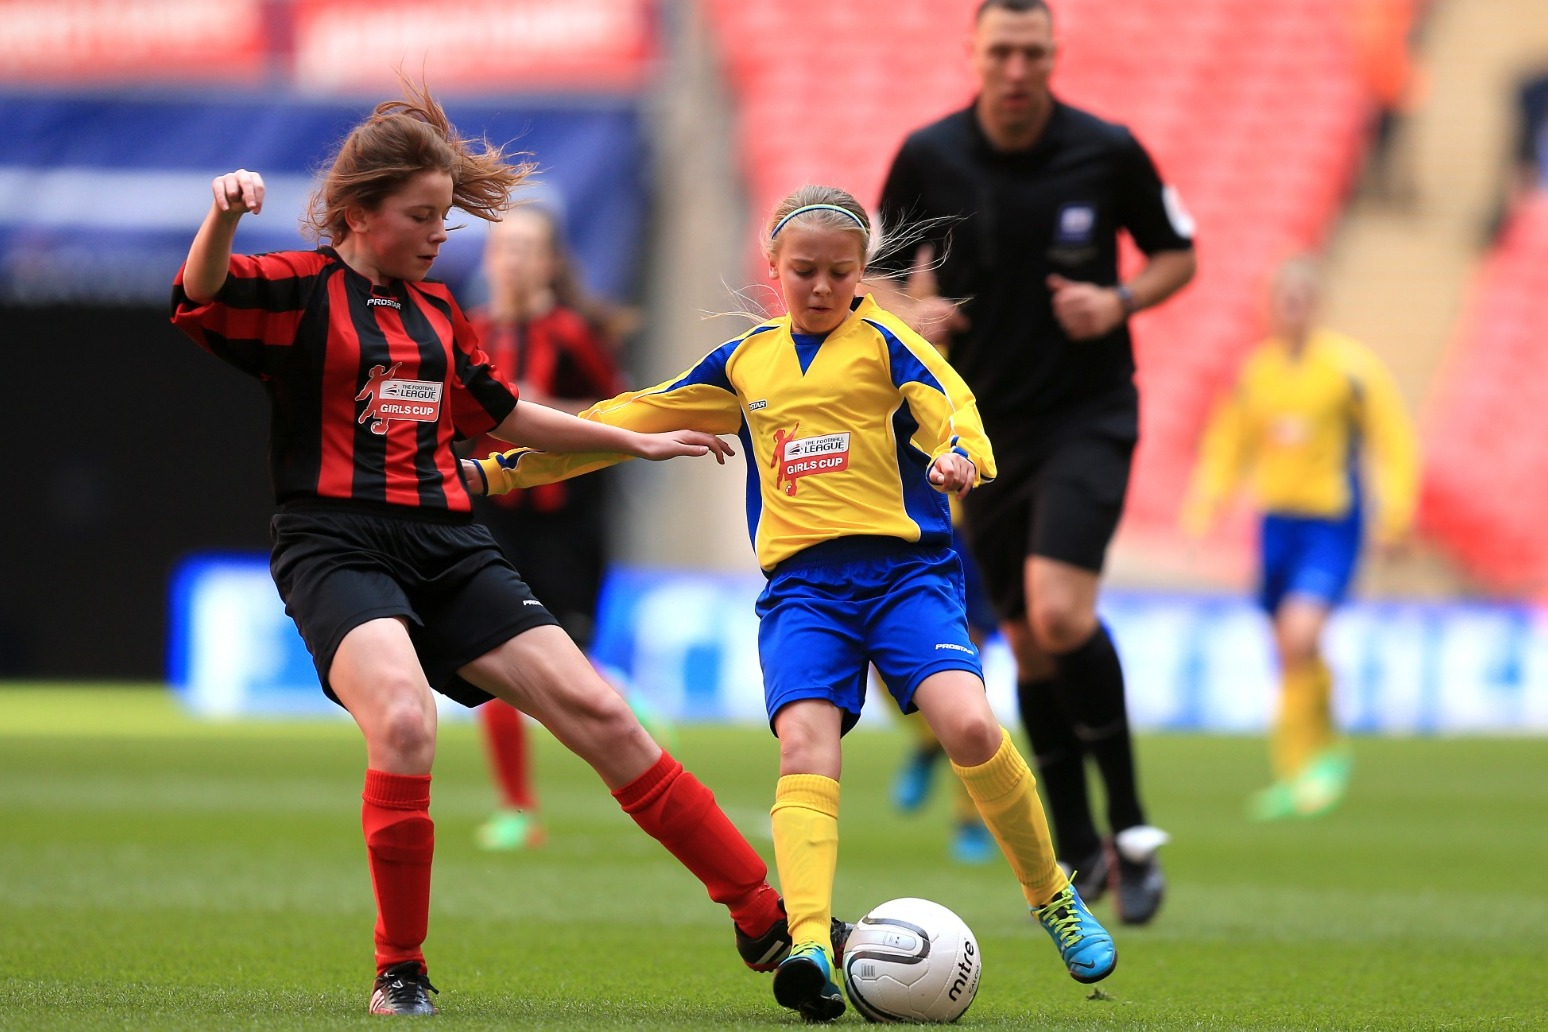 Teenage girls playing football face almost twice concussion risk of boys – study